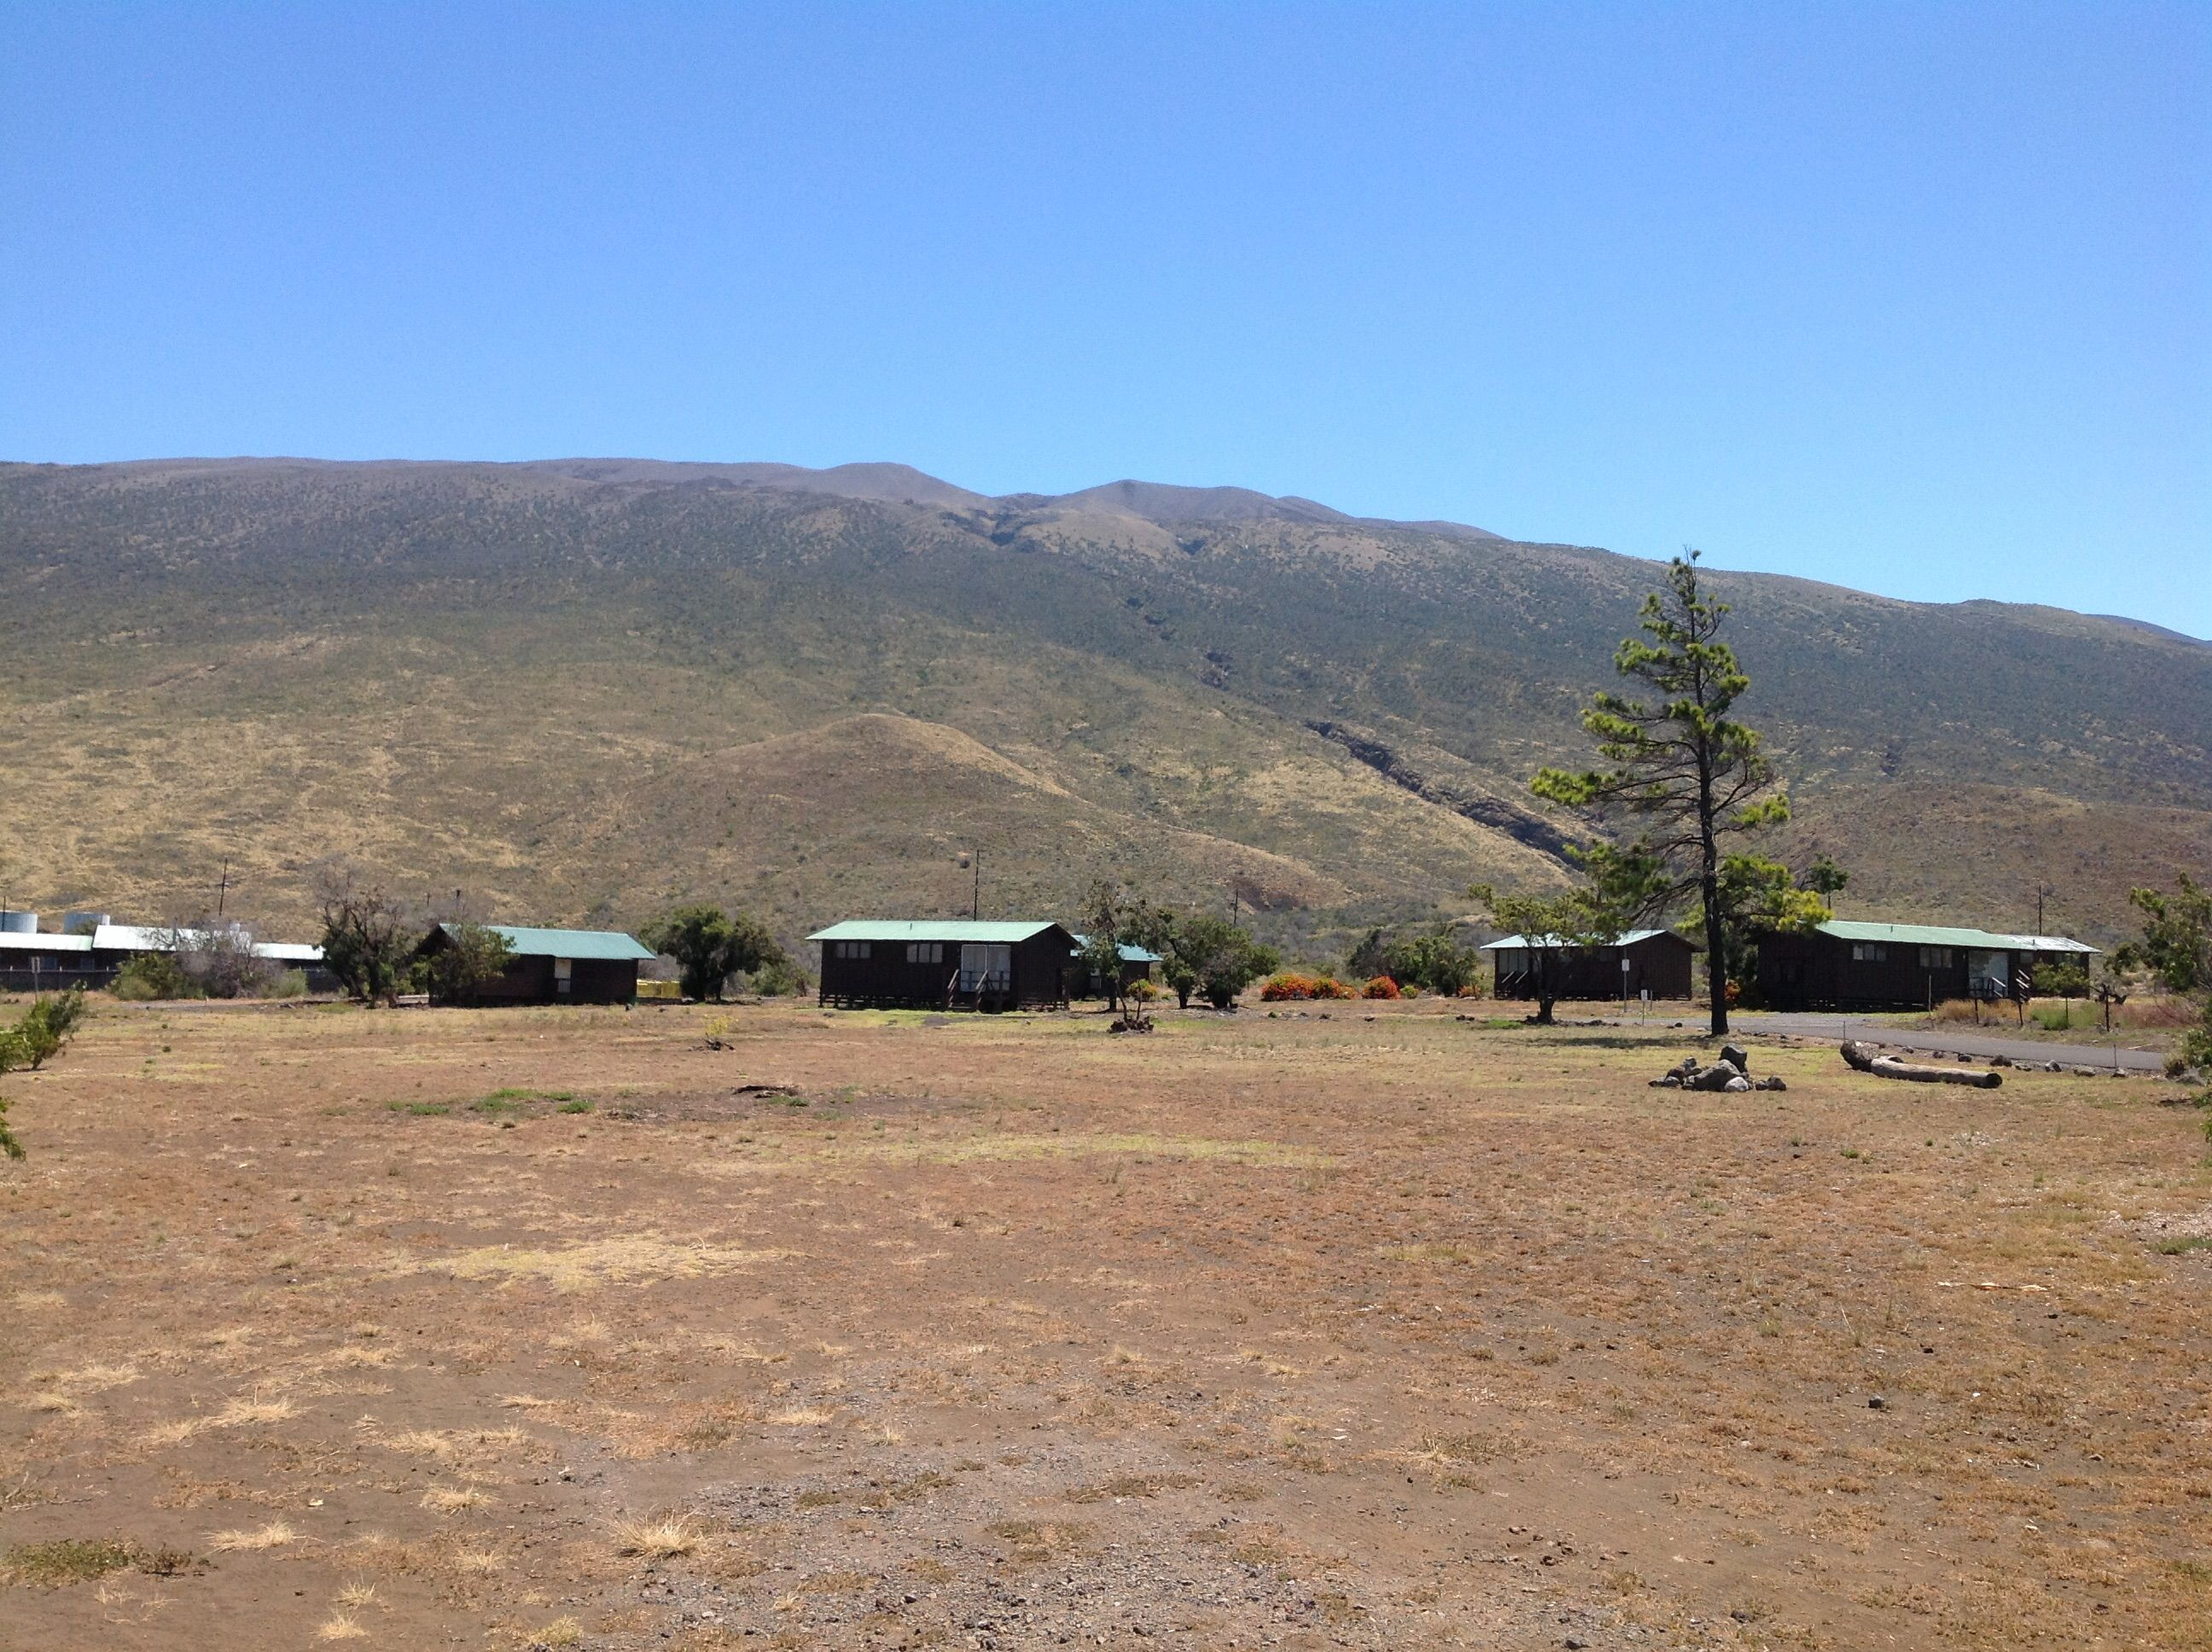 Camping cabins mauna kea stae park big island of hawaii for Big island cabins